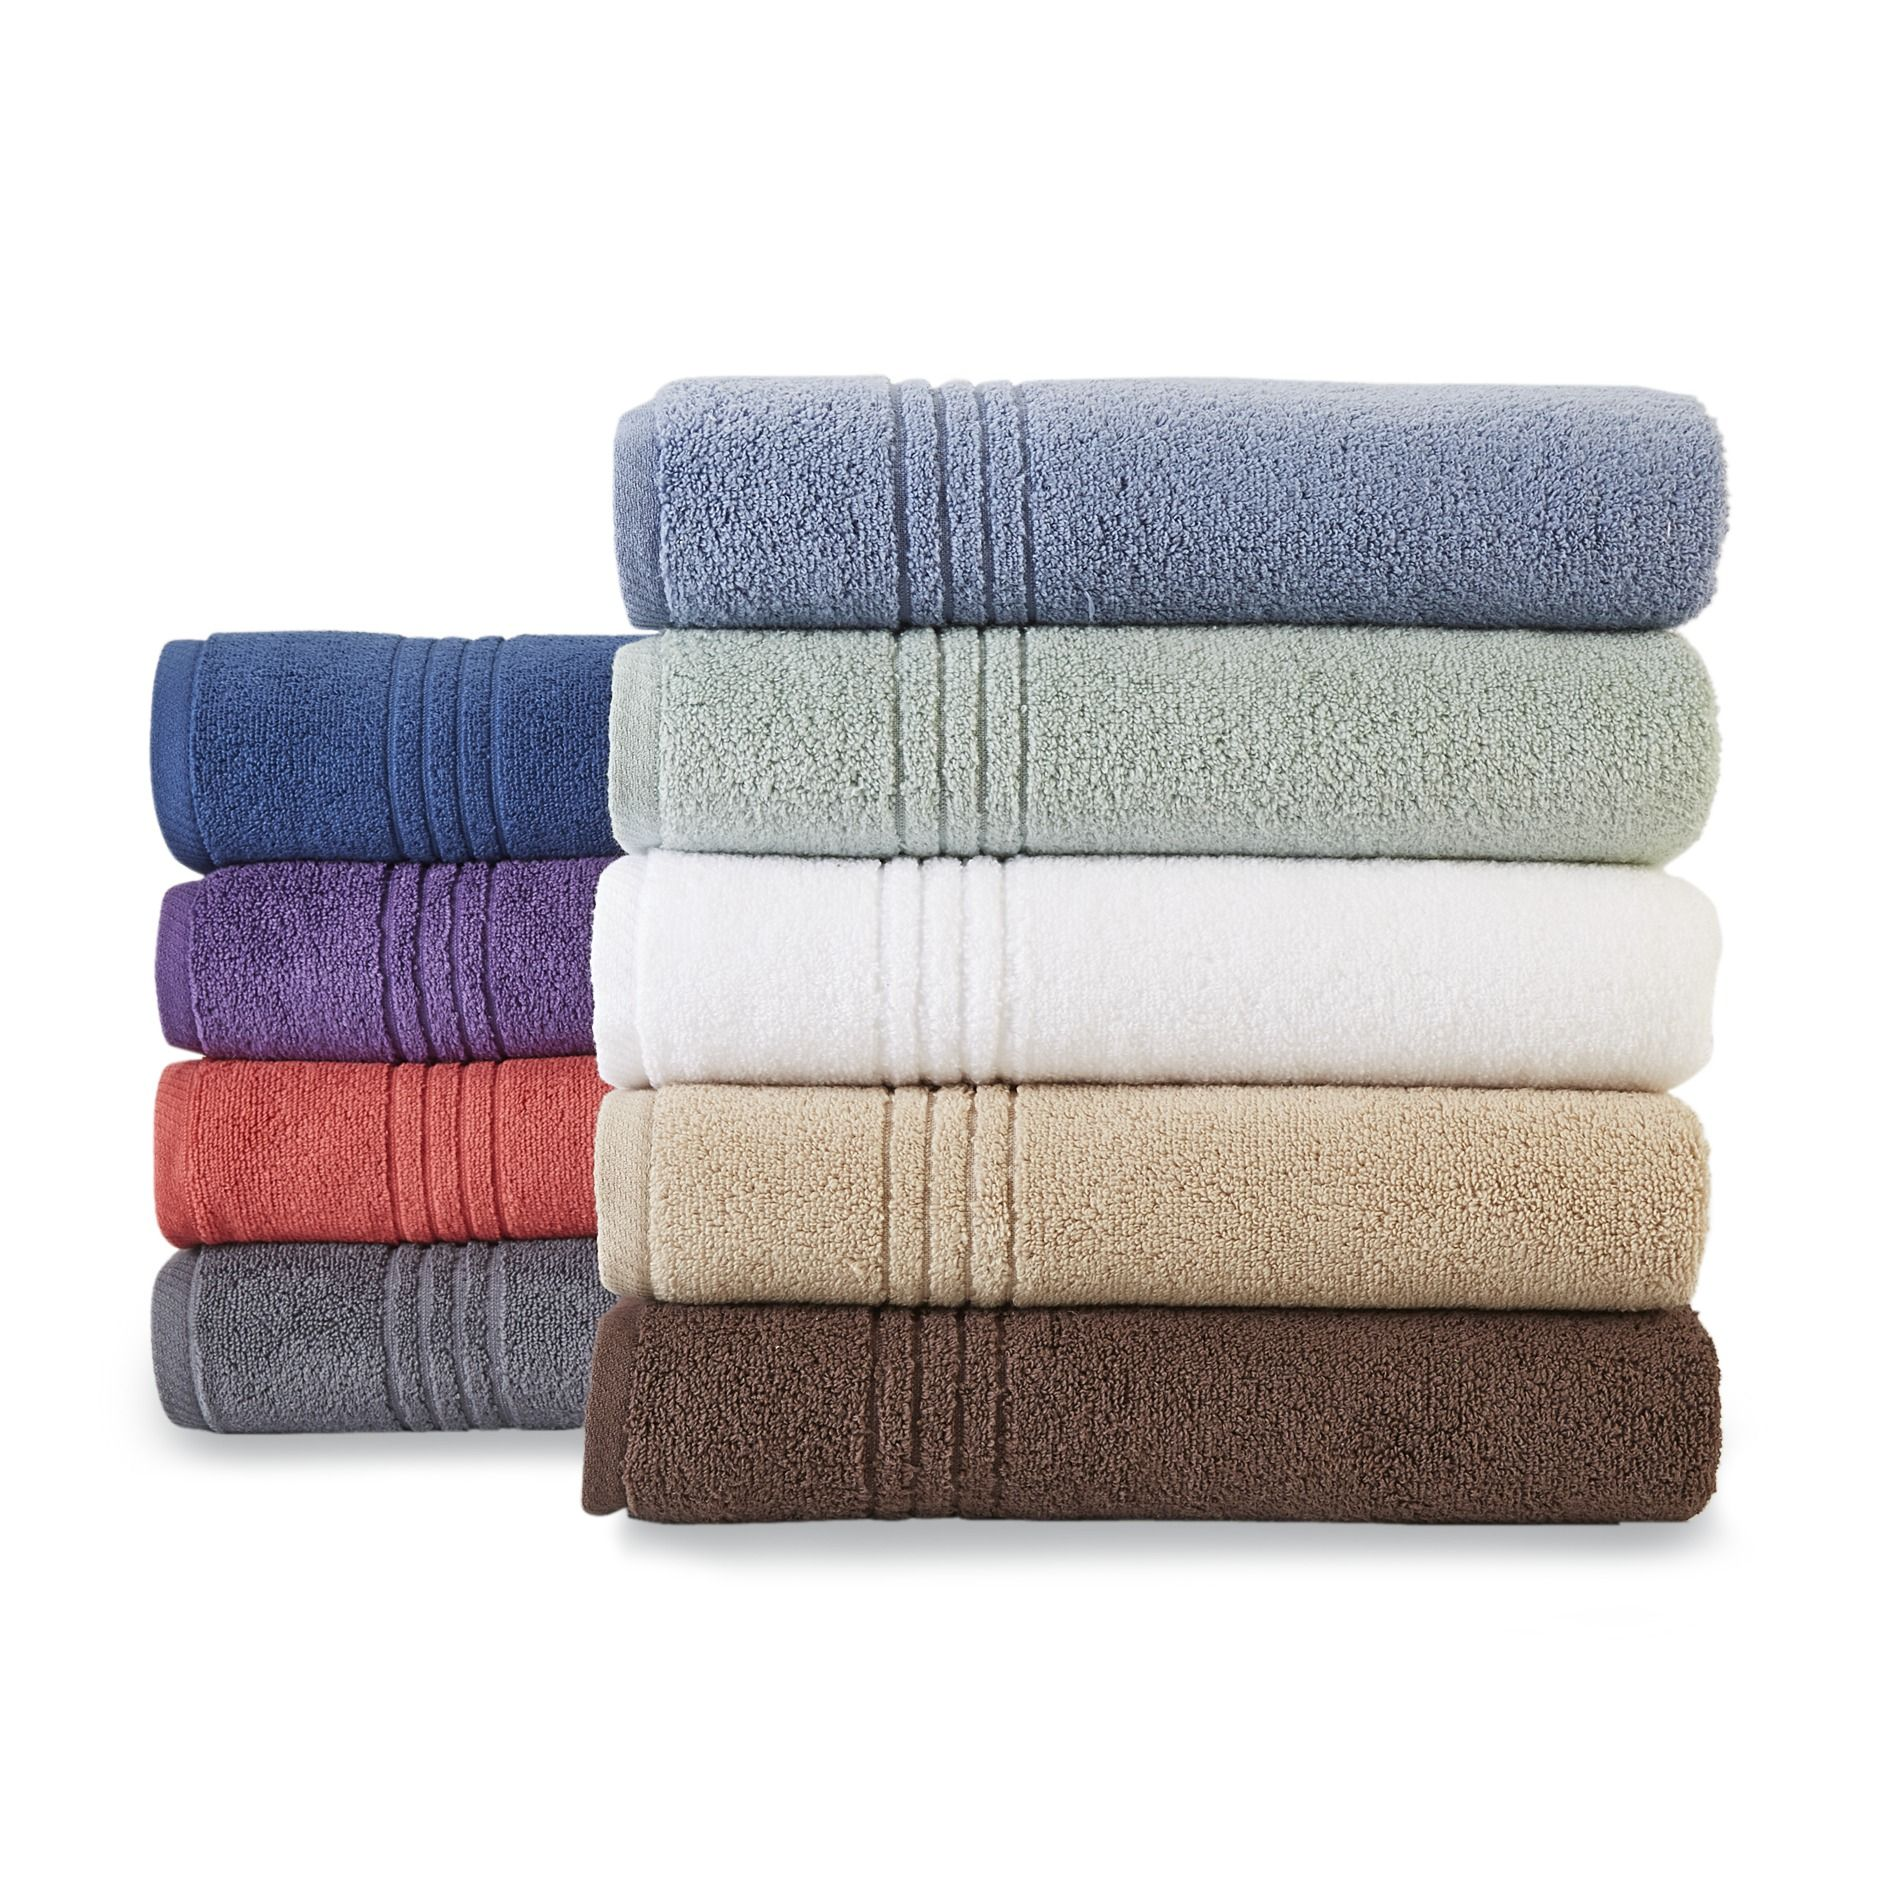 Colormate Soft And Plush Cotton Bath Towels Hand Towels Or